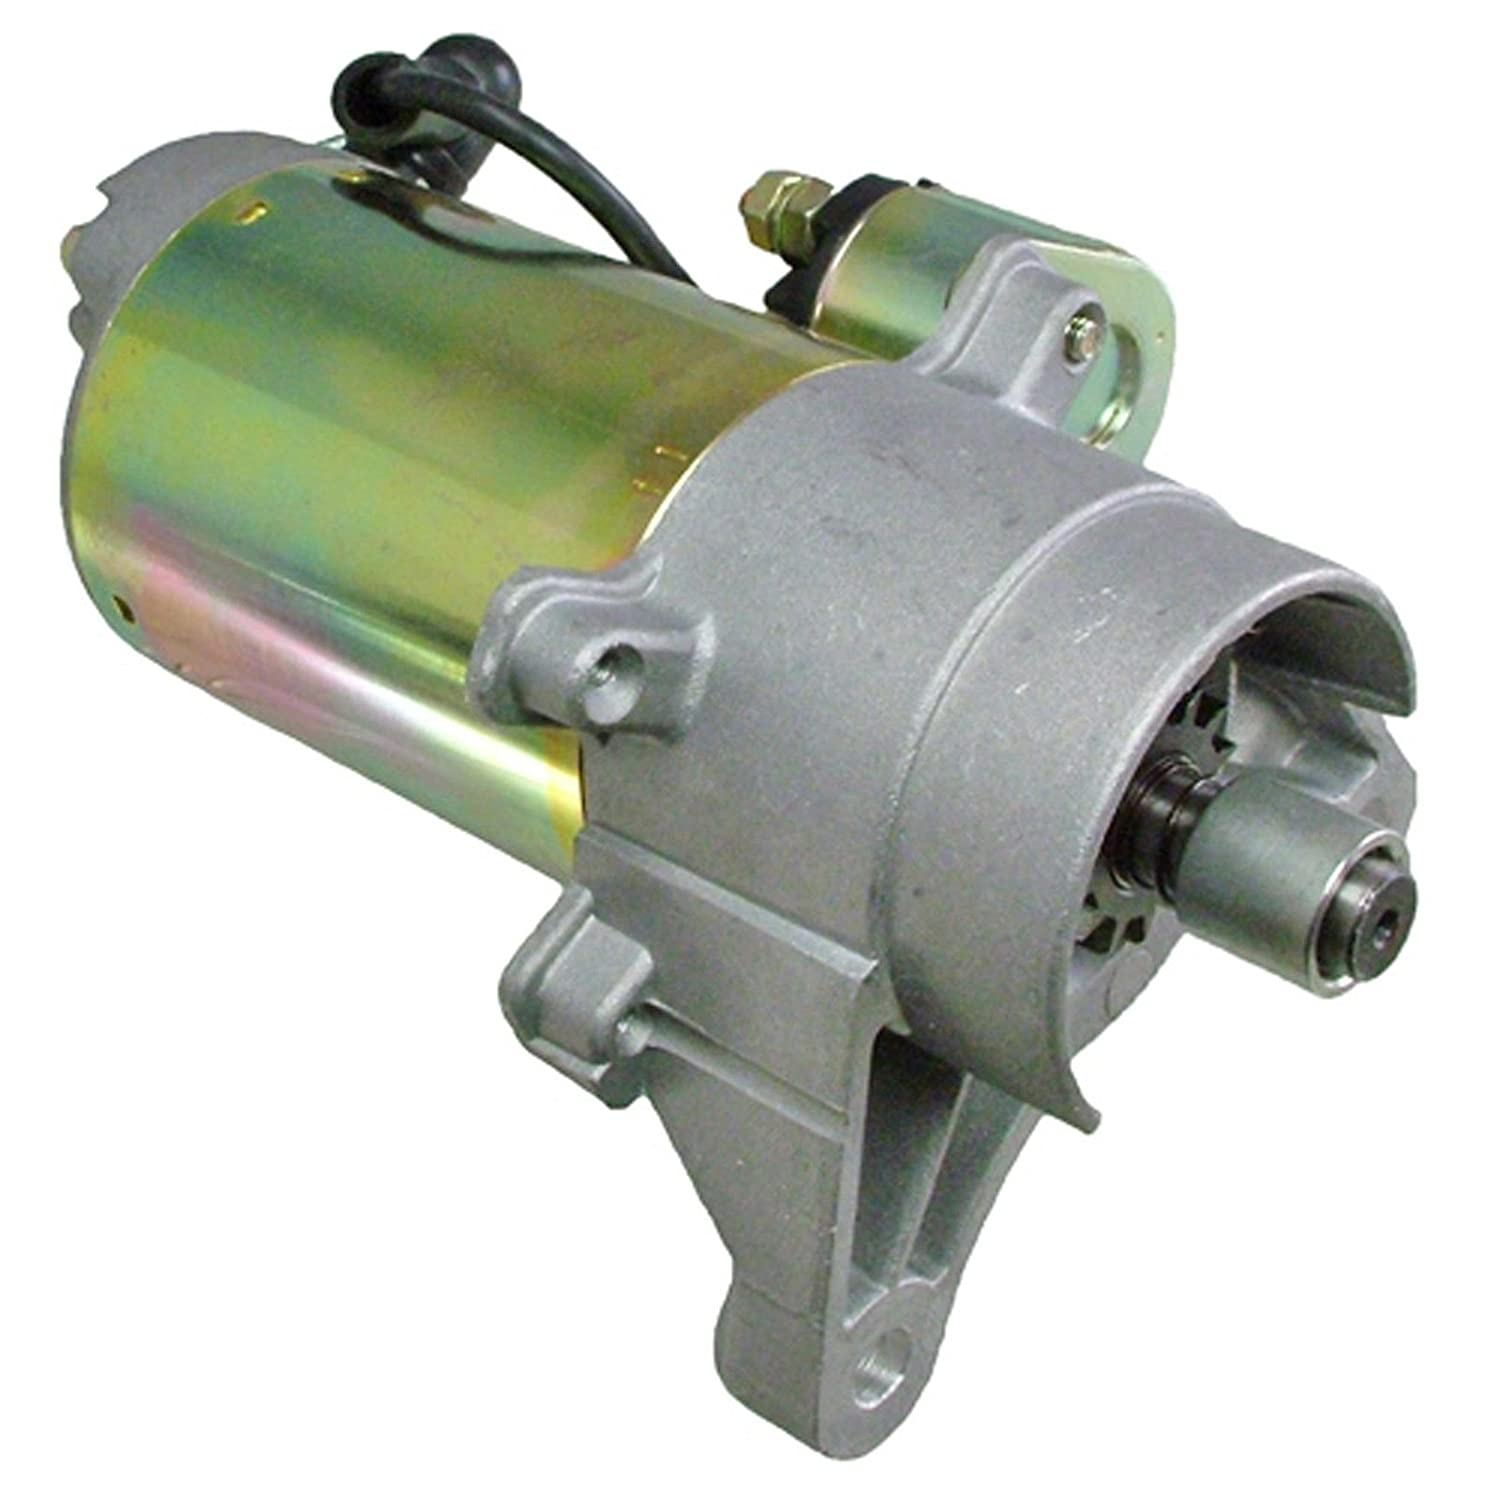 Amazon.com: NEW STARTER MOTOR FOR HONDA SMALL ENGINE 11 HP GX340DE33 028000-8411: Automotive